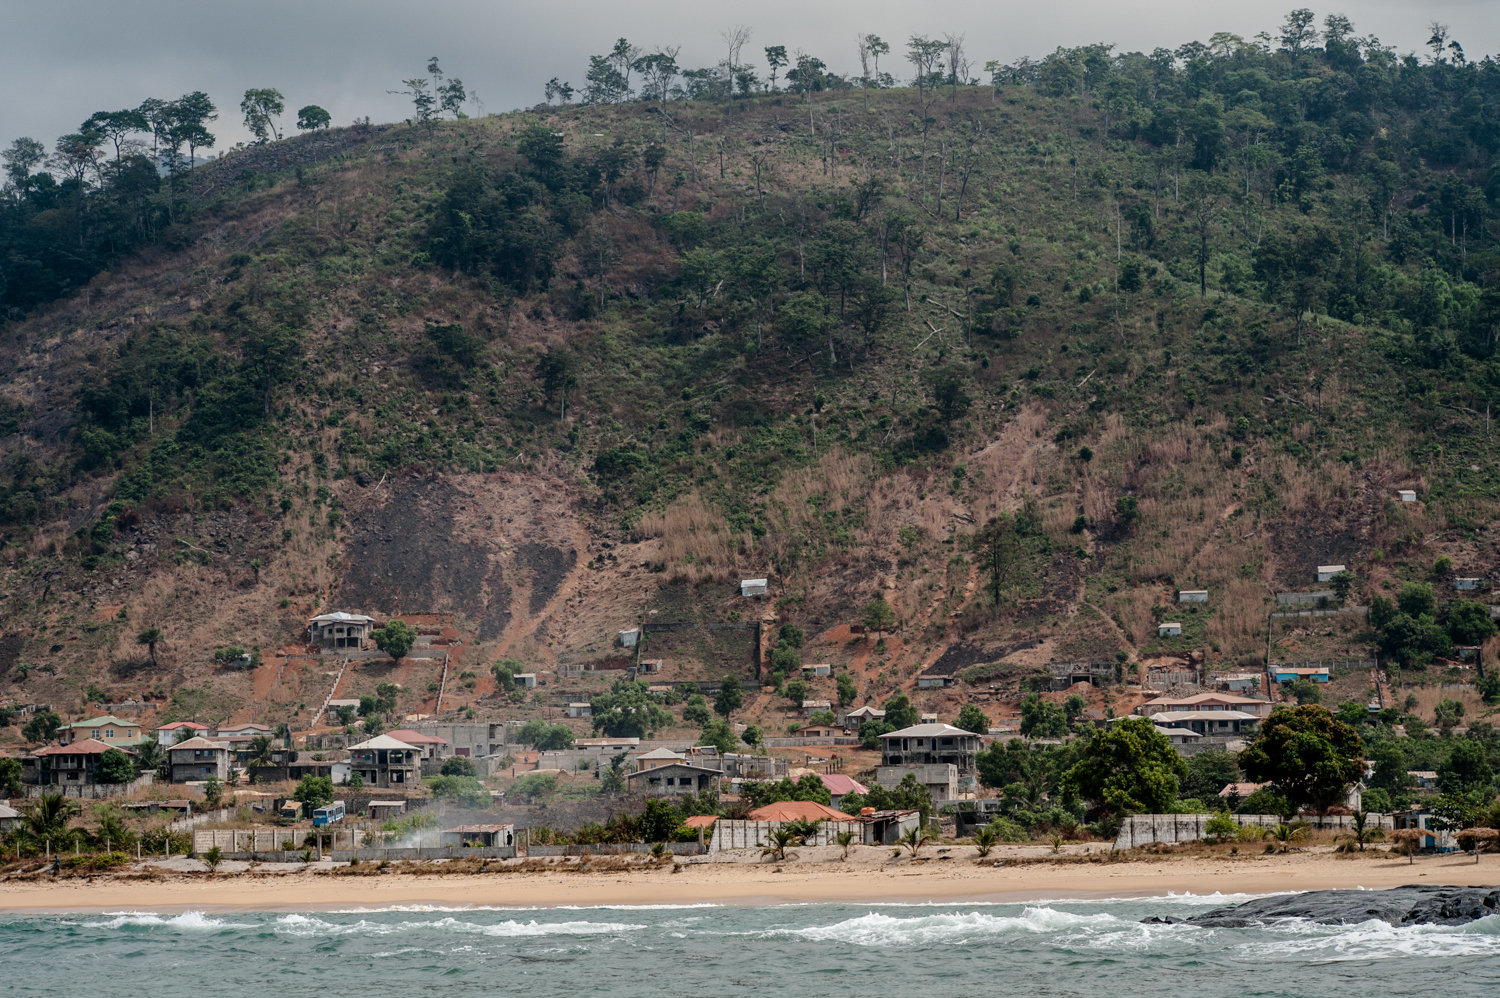 Further north and closer to the capital city of Freetown, the results of illegal sand mining and deforestation are evident.  The area's natural resources are being ravaged to make way for a new road.